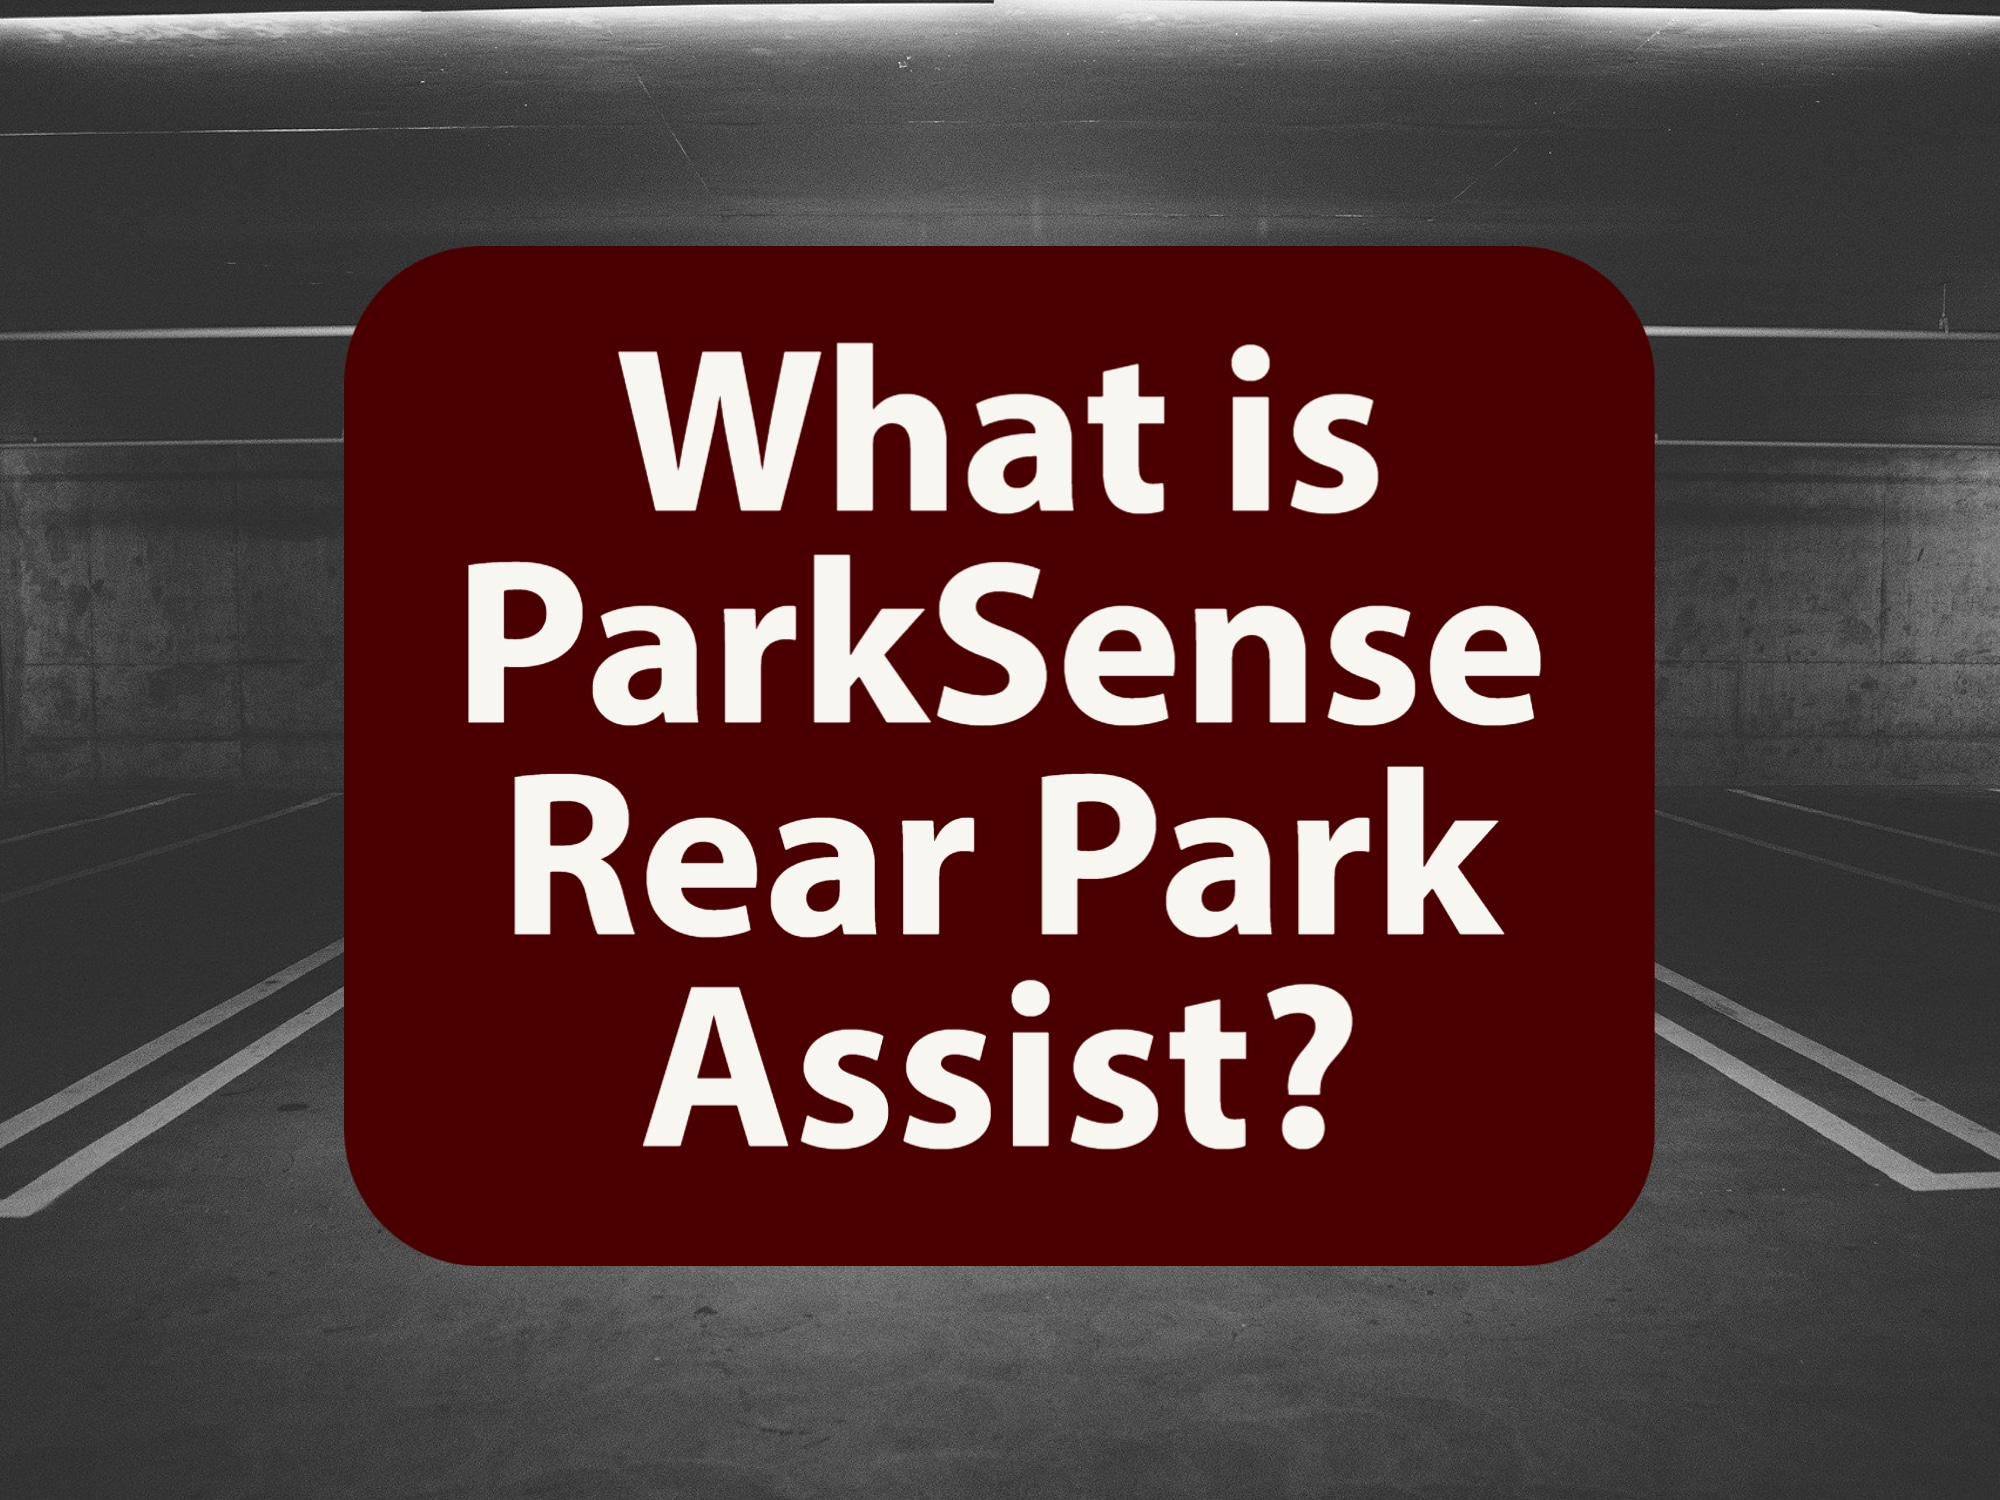 """Black and White Parking lot with words """"What is ParkSense Rear Park Assist?"""" in maroon-colored box"""